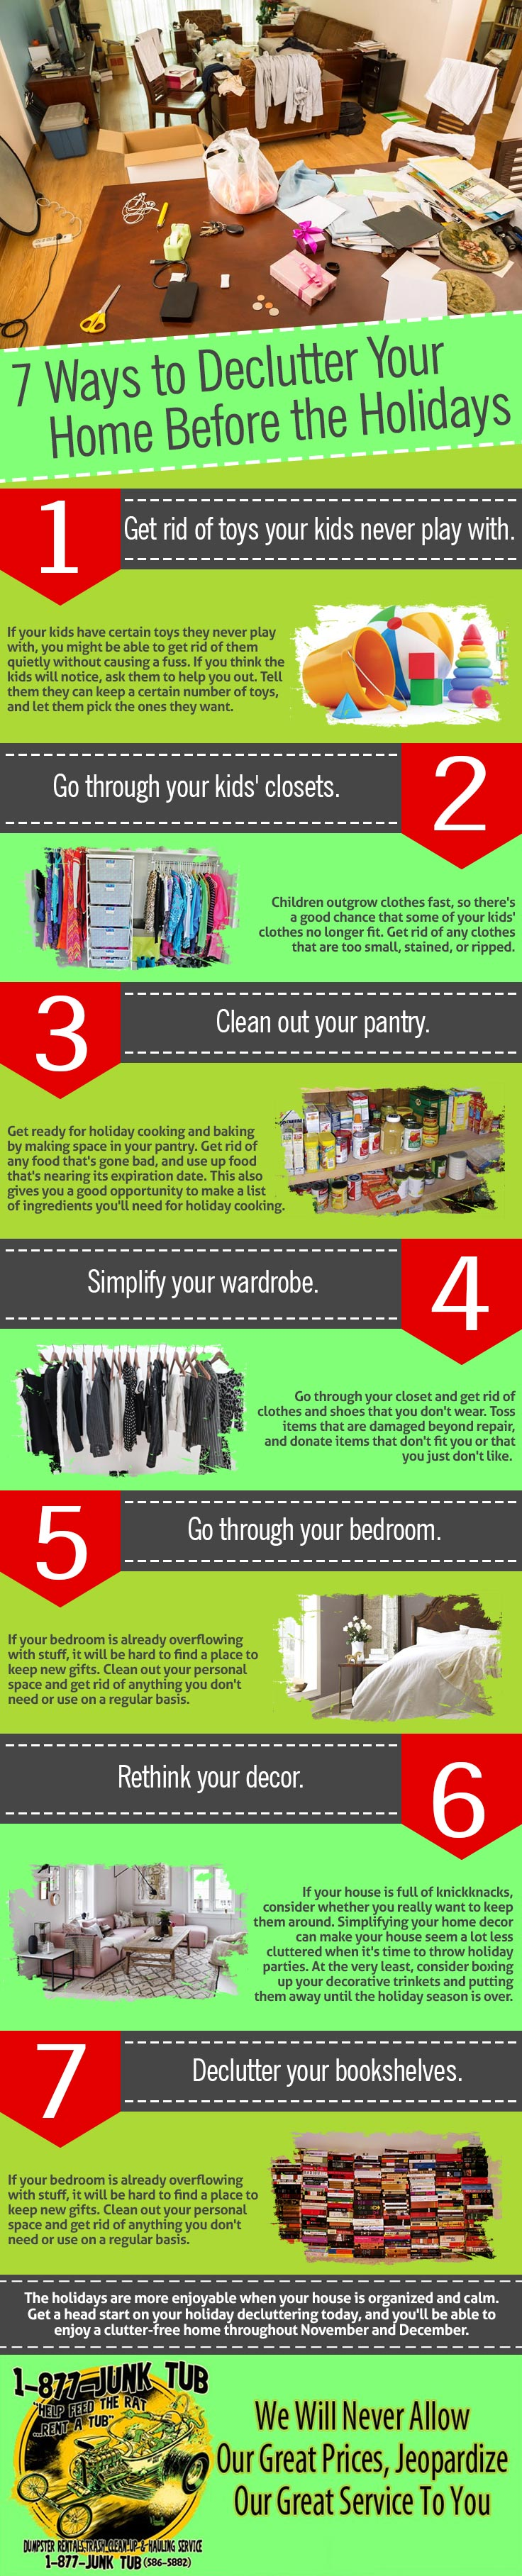 decluter-your-home-infographic